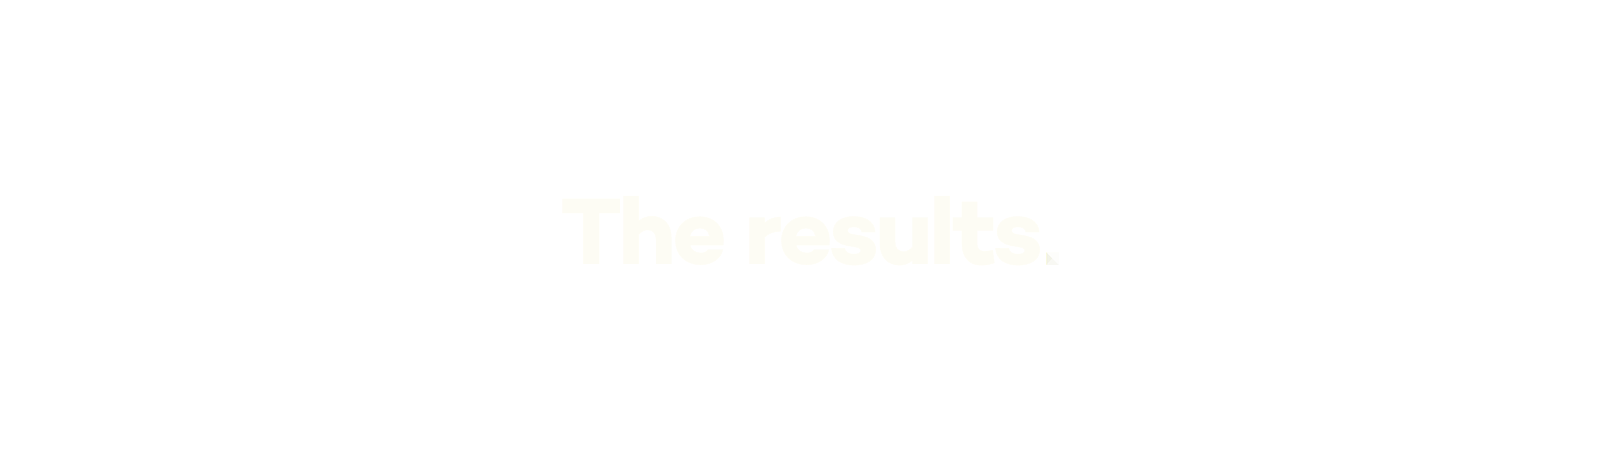 The results .png